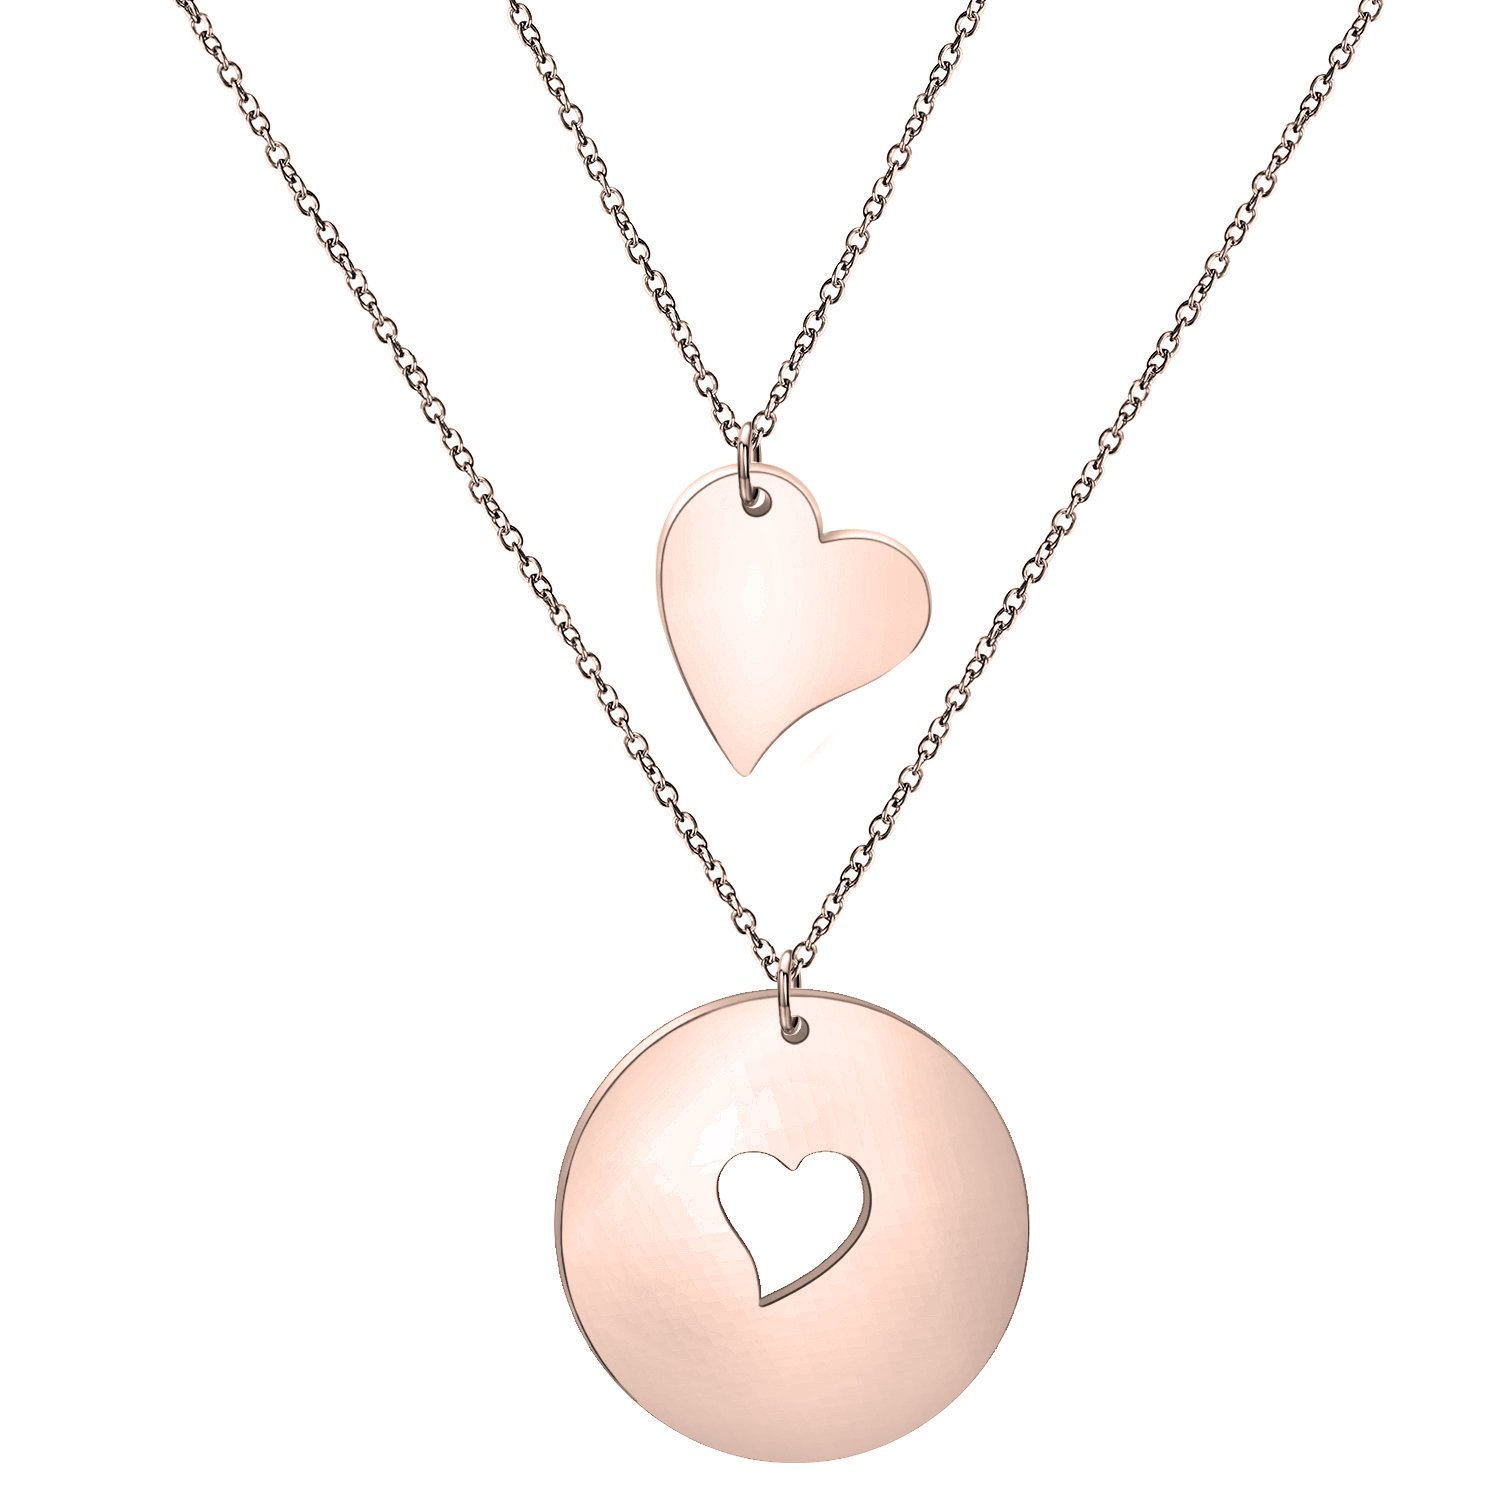 Zuo Bao Mother and Daughters Necklace Set- Mom and Daughter Jewelry- Gift for Mom- Mother's Day Gift (Rose Gold-1 daughter)